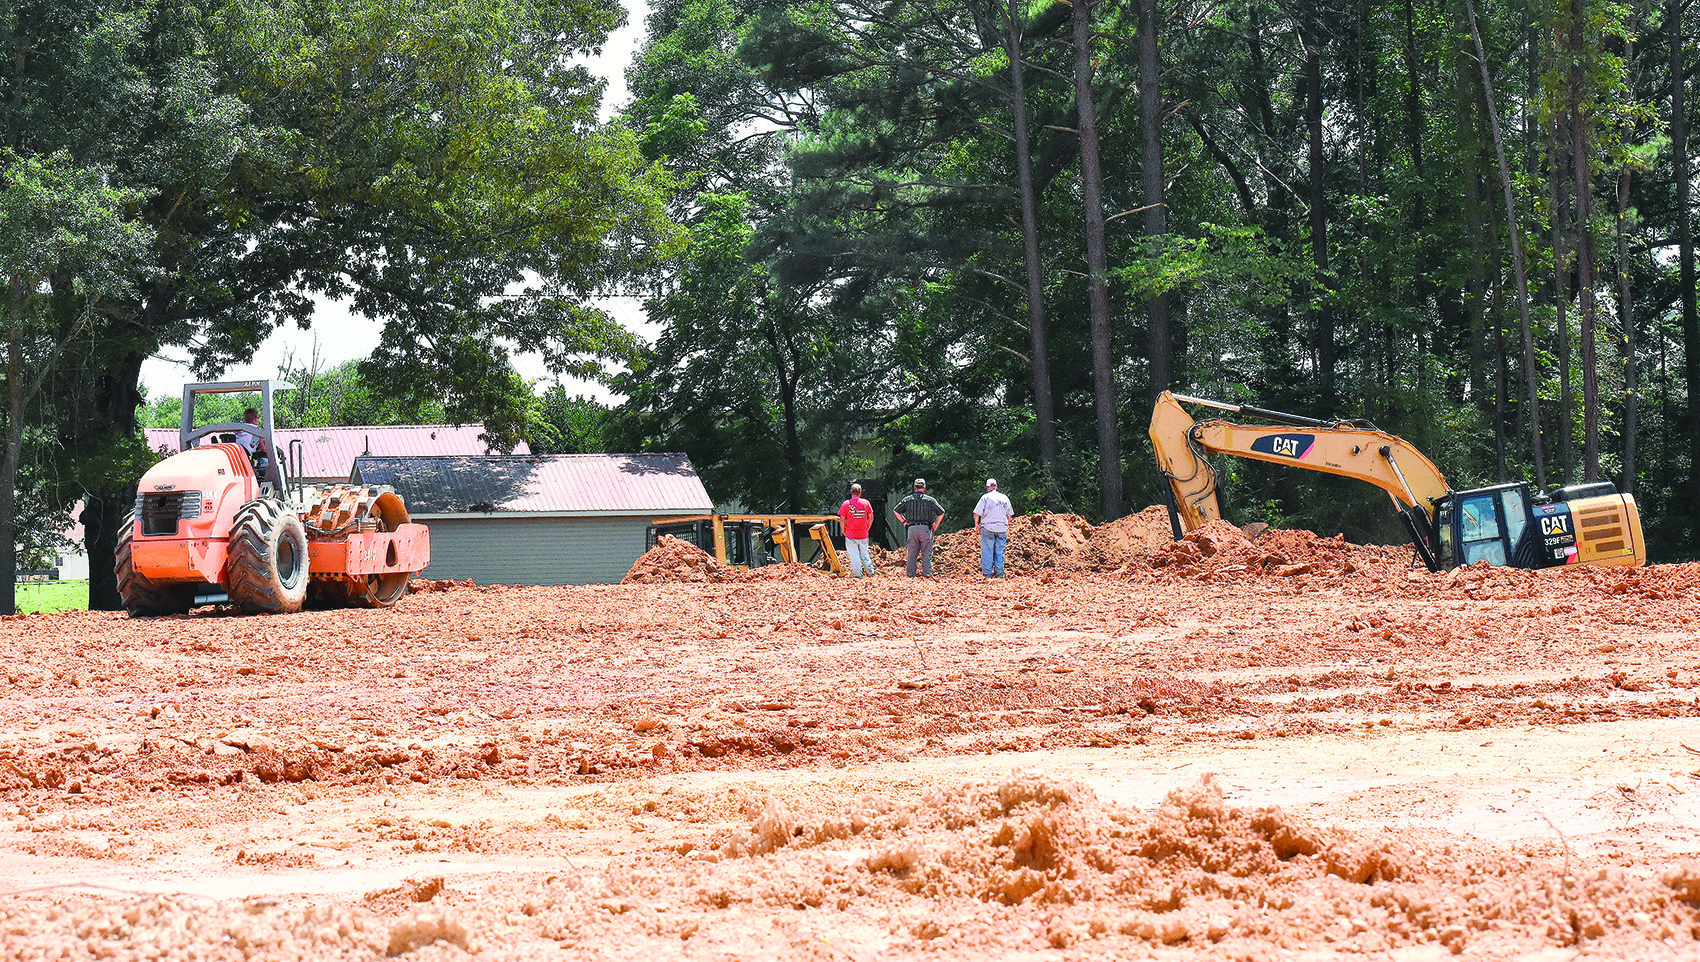 Construction under way on new Tractor Supply   Daily